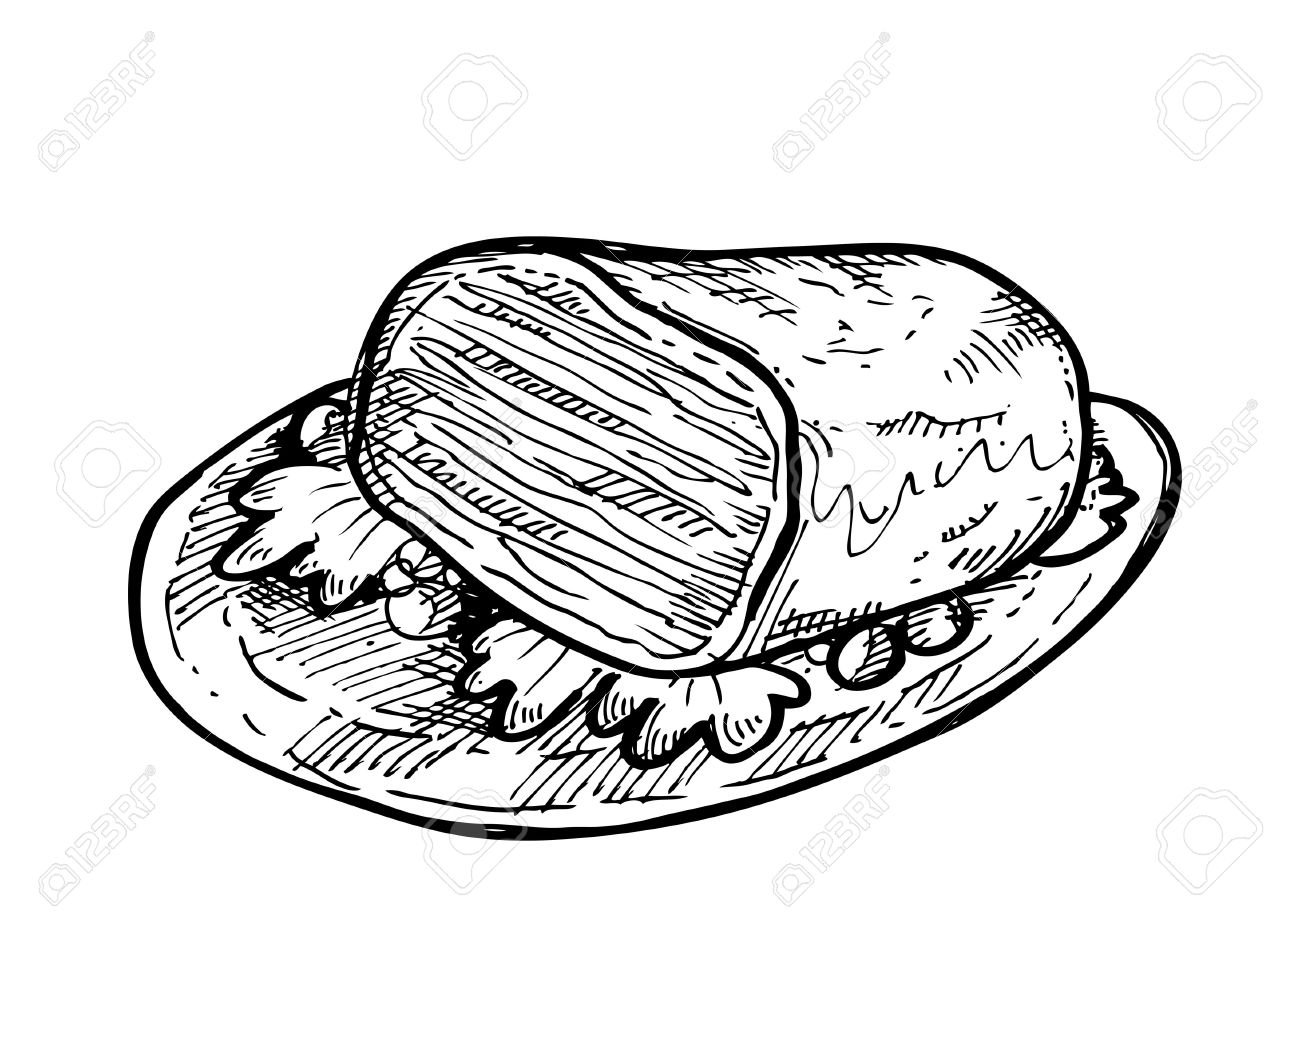 Sketchy Meat On A Plate Royalty Free Cliparts, Vectors, And Stock ... for Beef Clipart Black And White  34eri